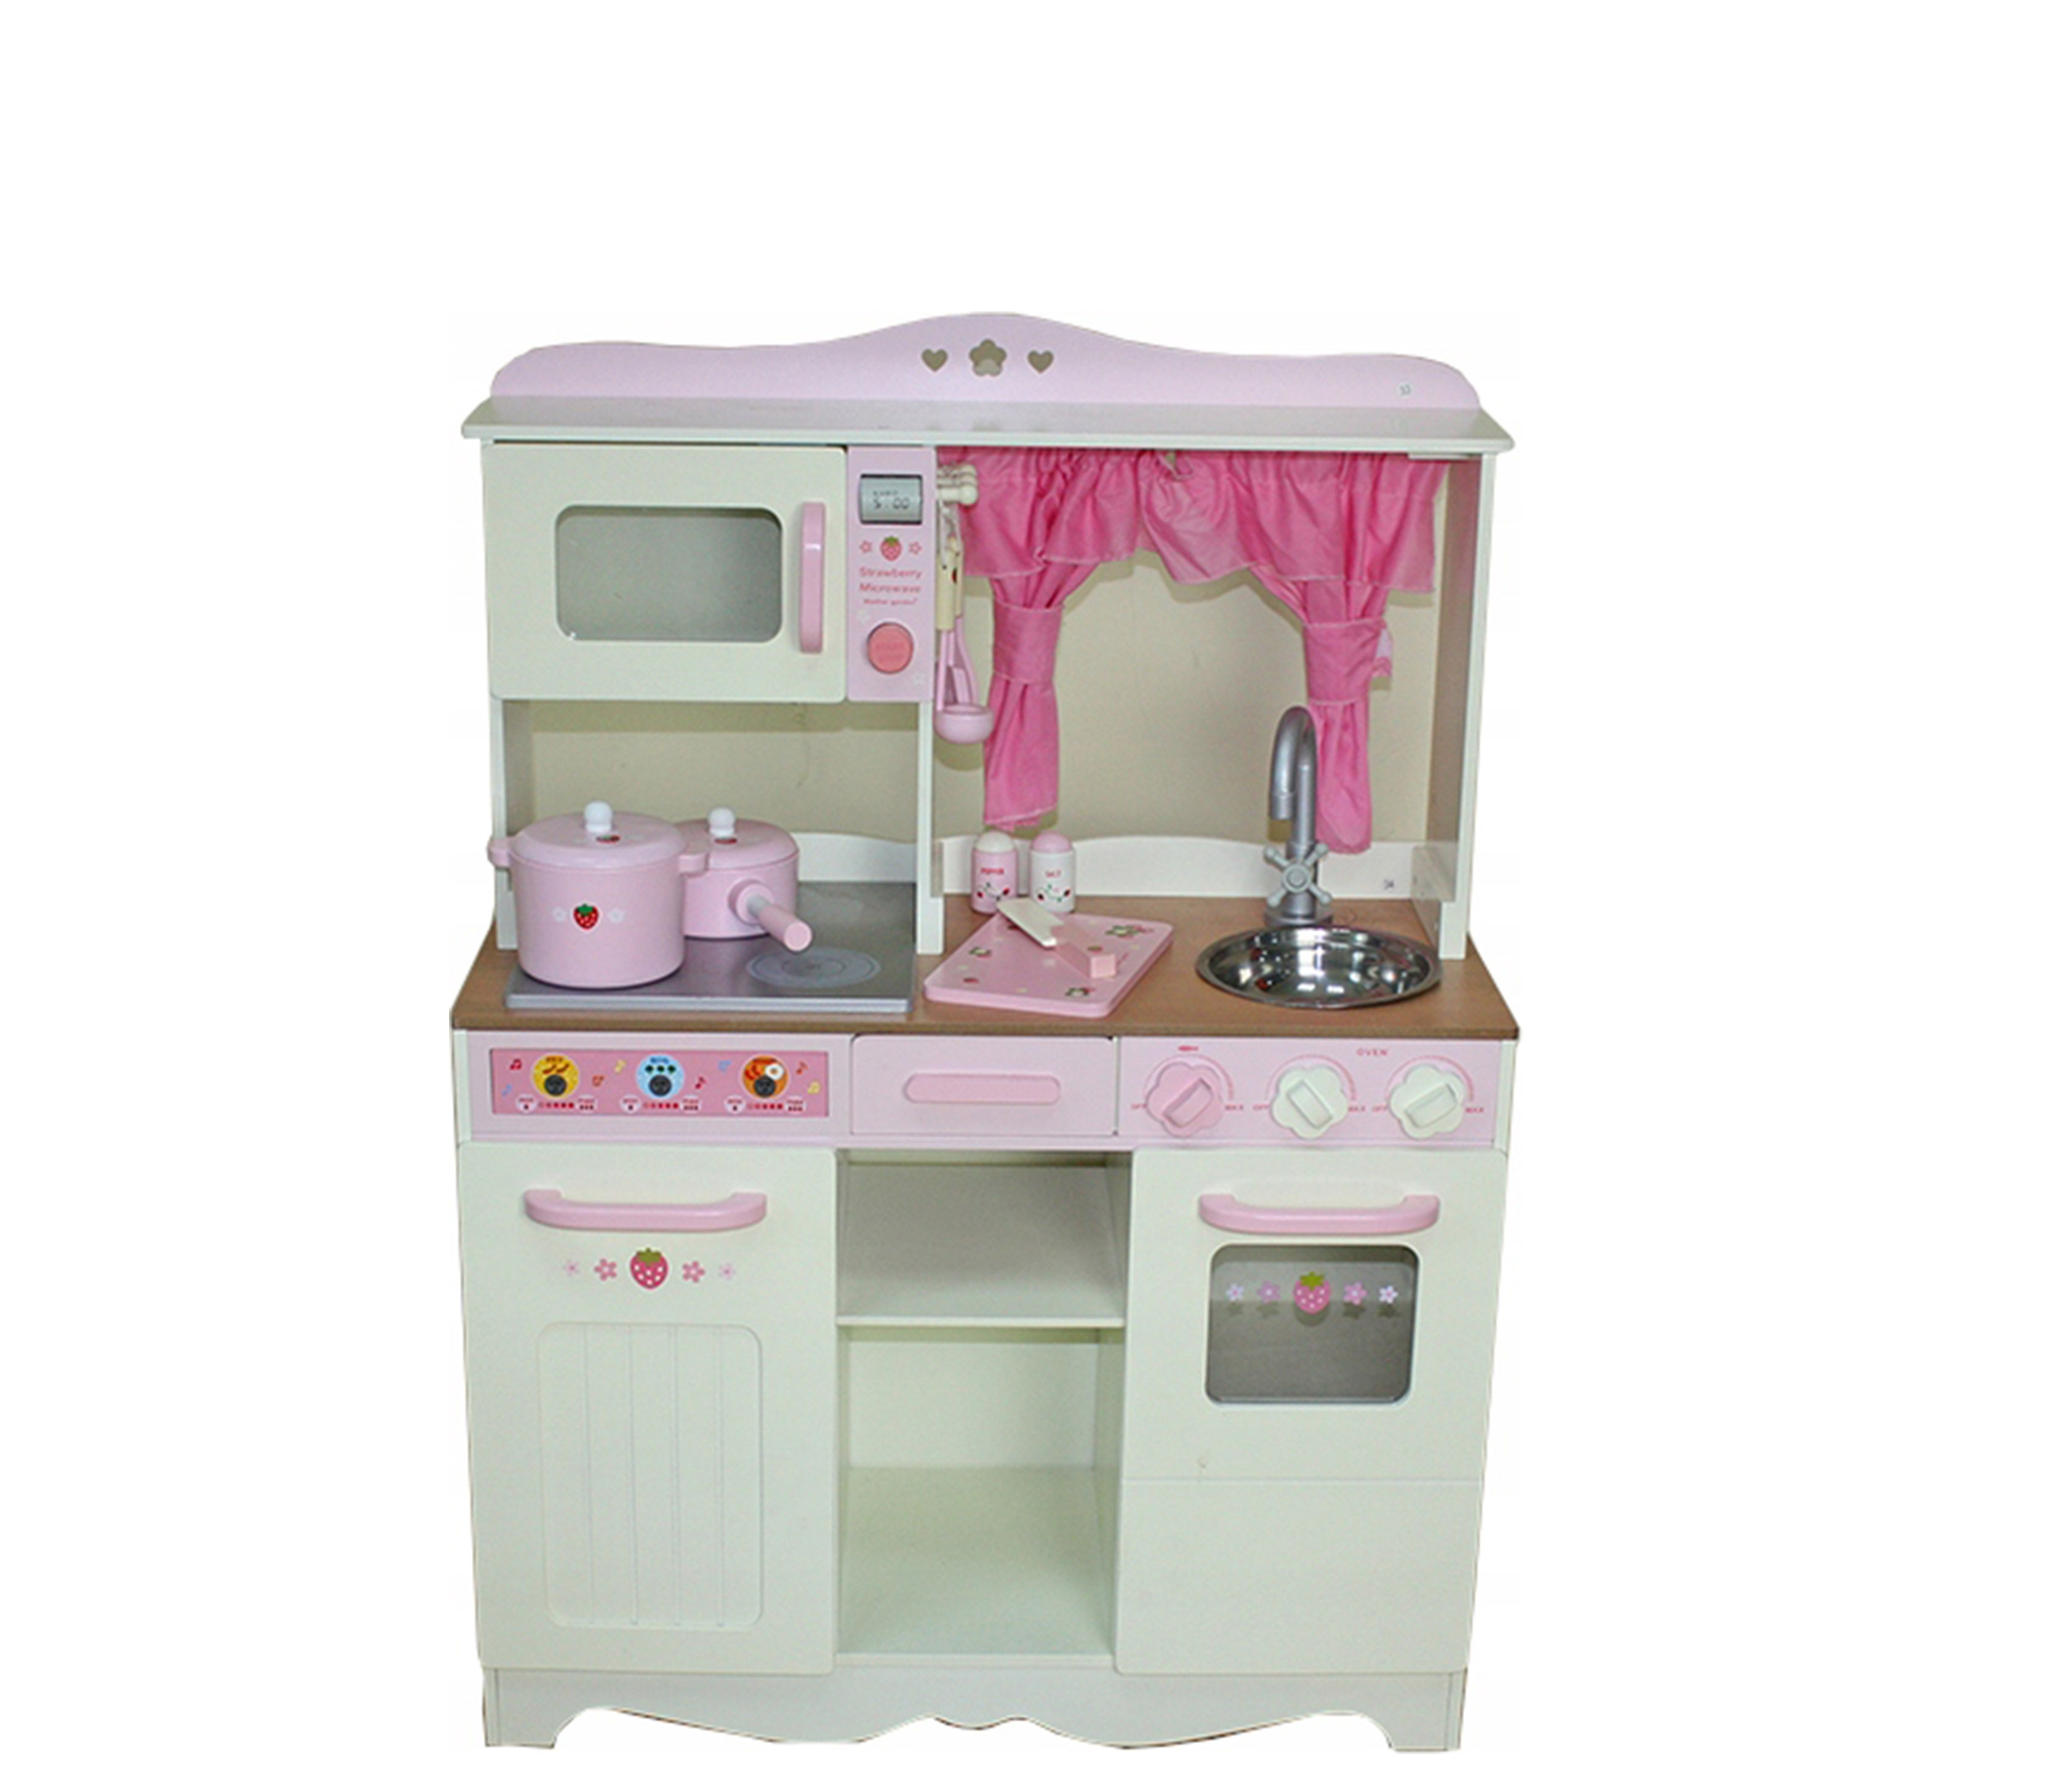 Aga4Kids Kuchyňka RETRO COOKER LONG